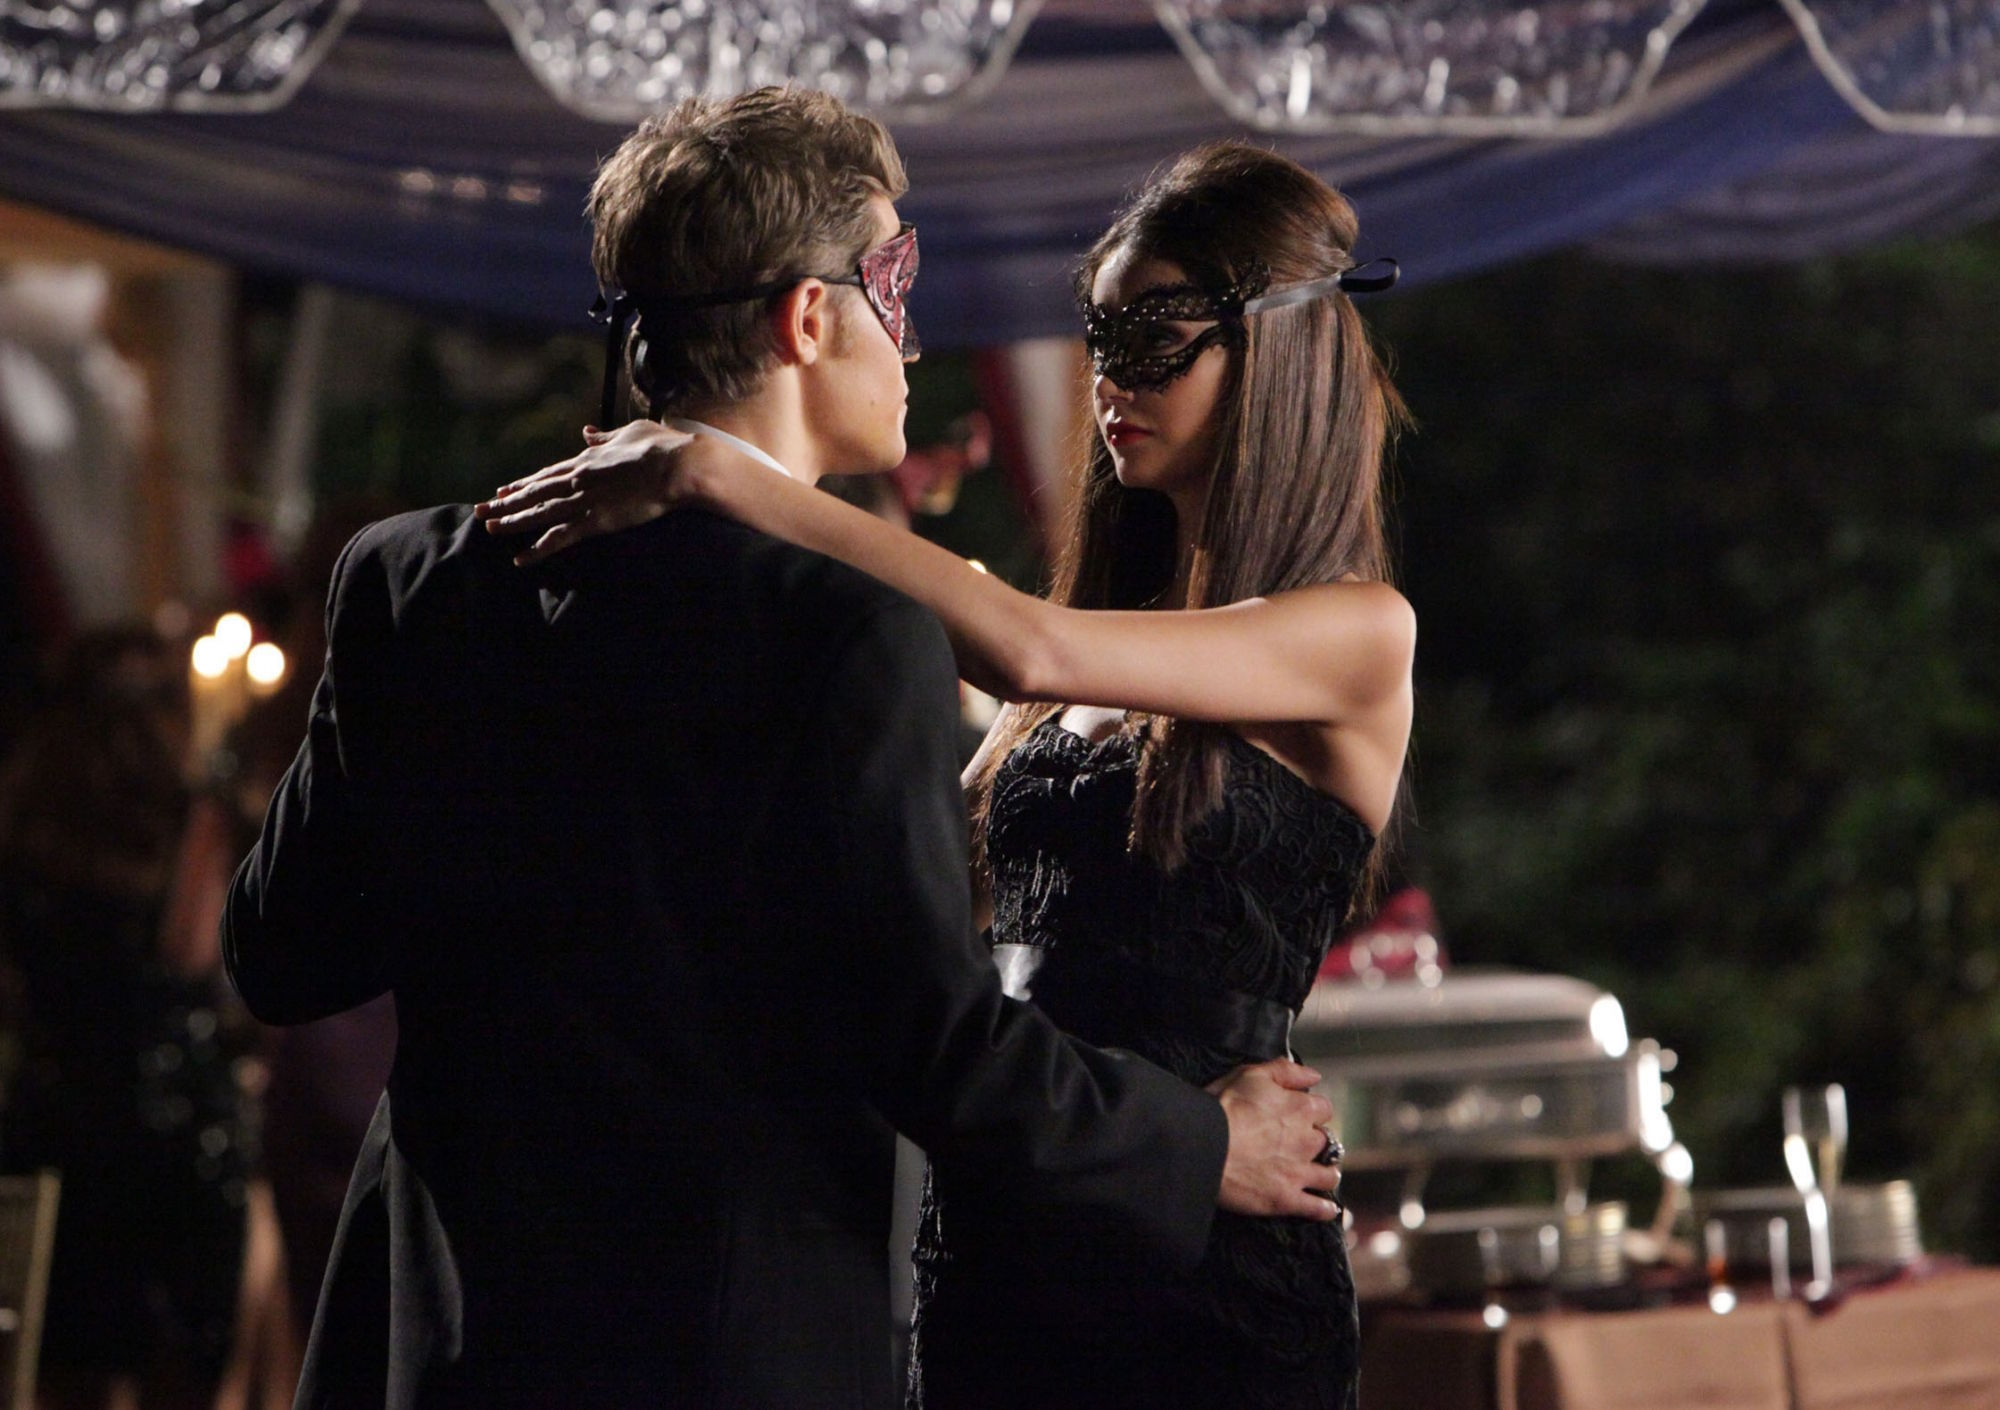 http://images4.fanpop.com/image/photos/16200000/2-07-Masquerade-the-vampire-diaries-16220621-2000-1410.jpg